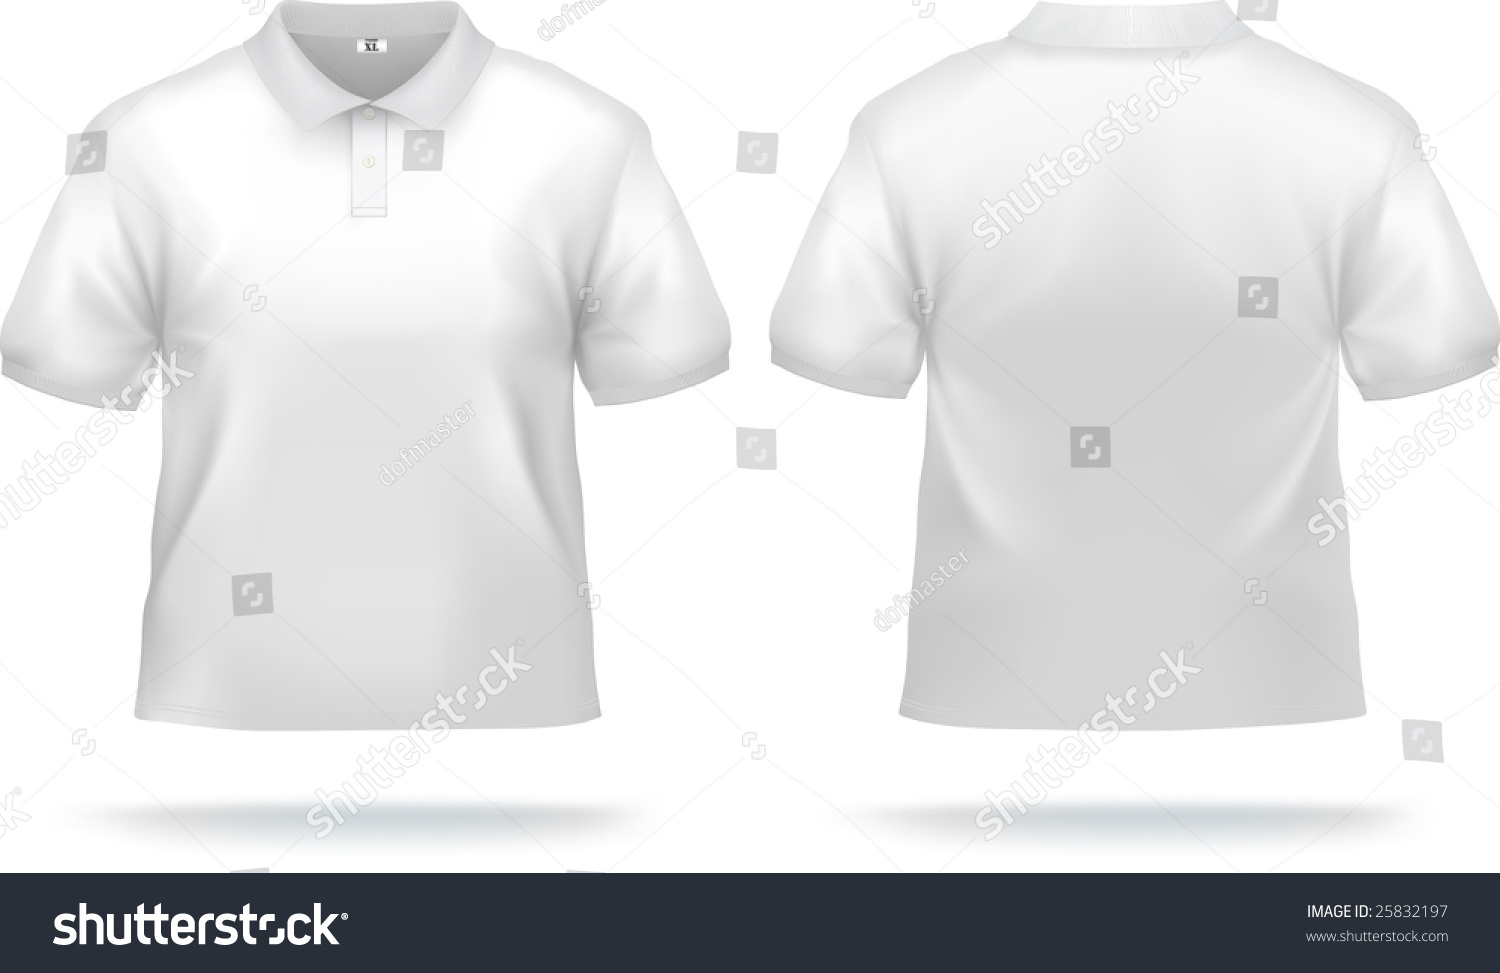 Shirt design white - White Polo Shirt Design Template Front Back Contains Gradient Mesh Elements